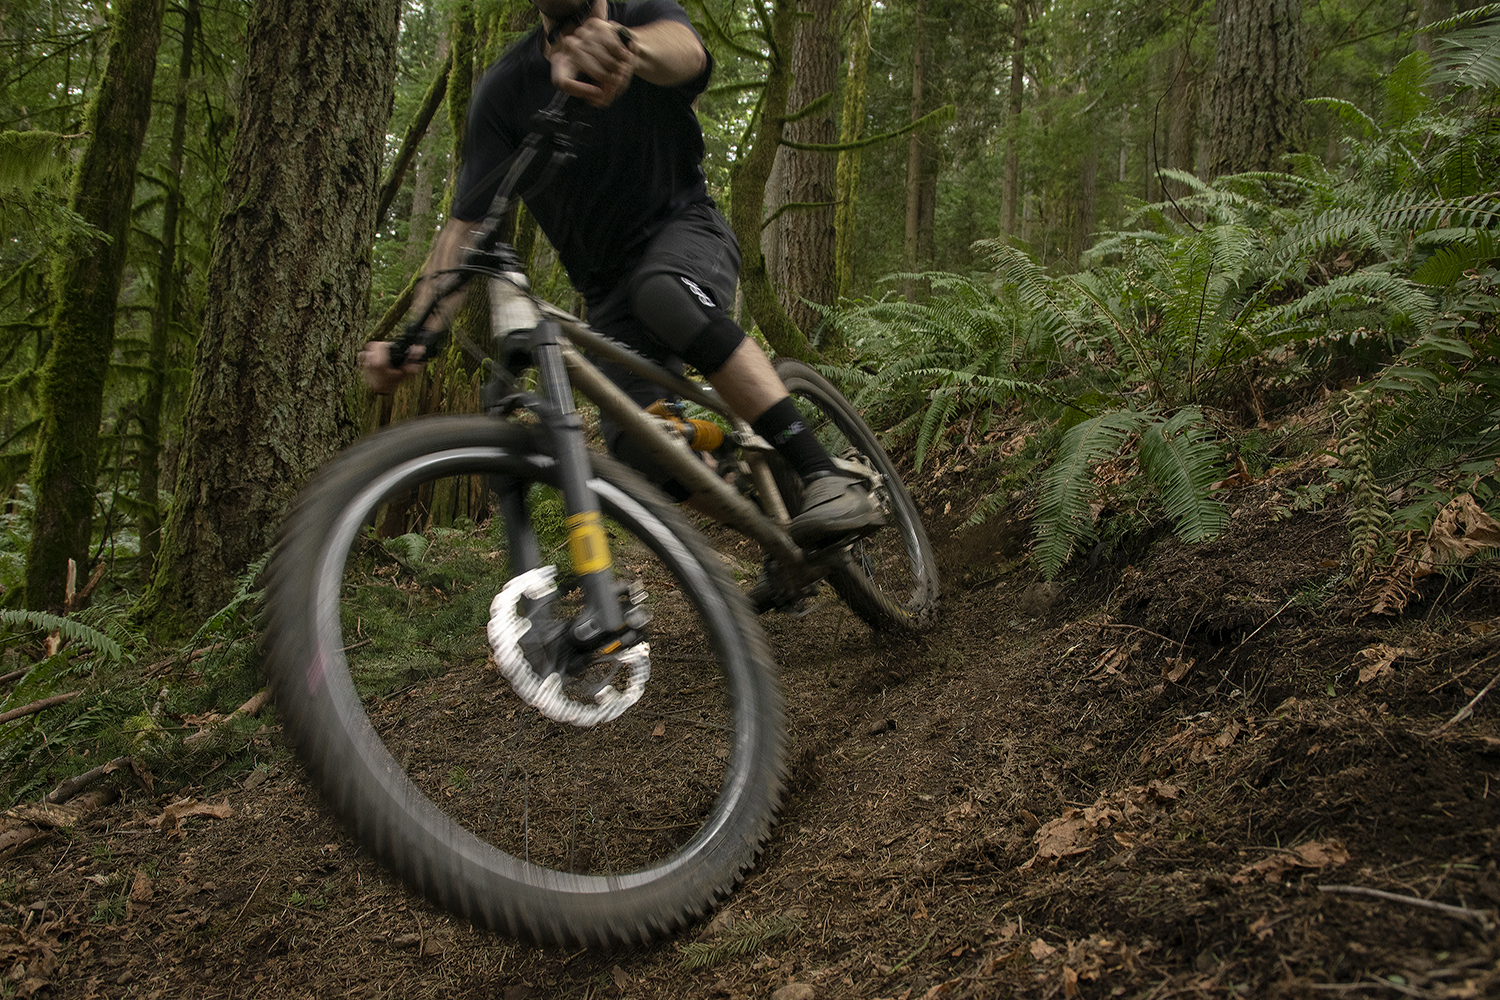 David Golay reviews the Ohlins RXF36 for Blister